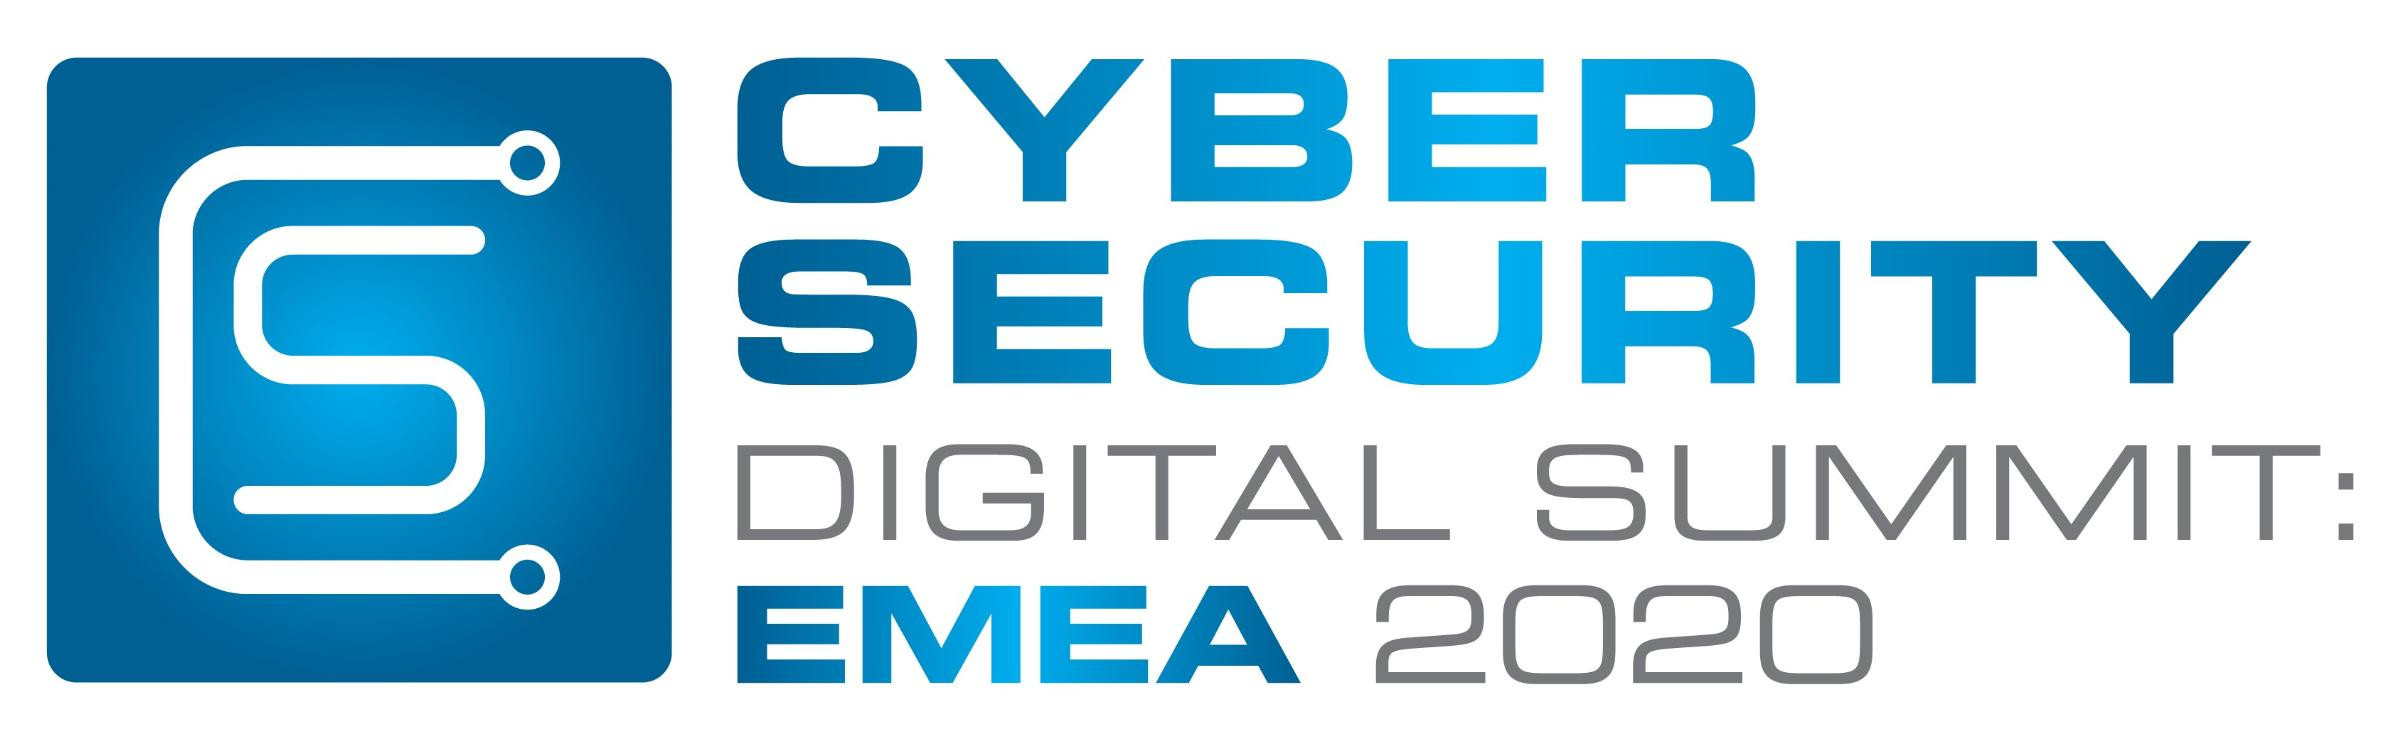 Cyber Security Digital Summit: EMEA 2020